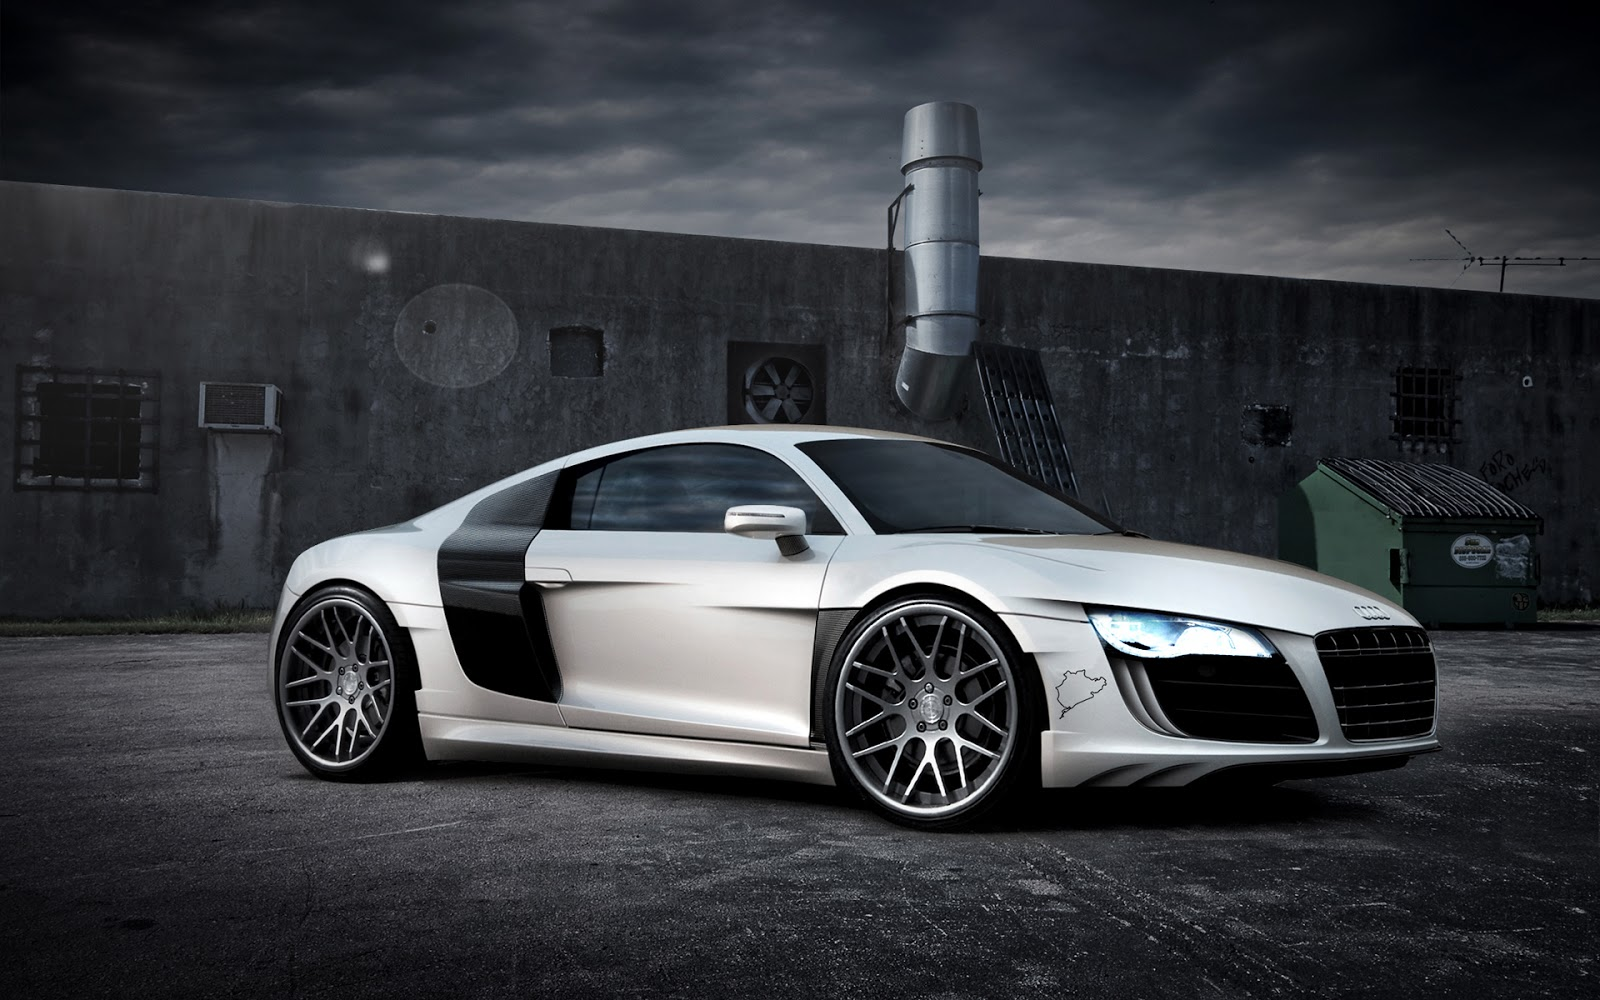 Cool Cars HD Wallpapers – wallpaper202